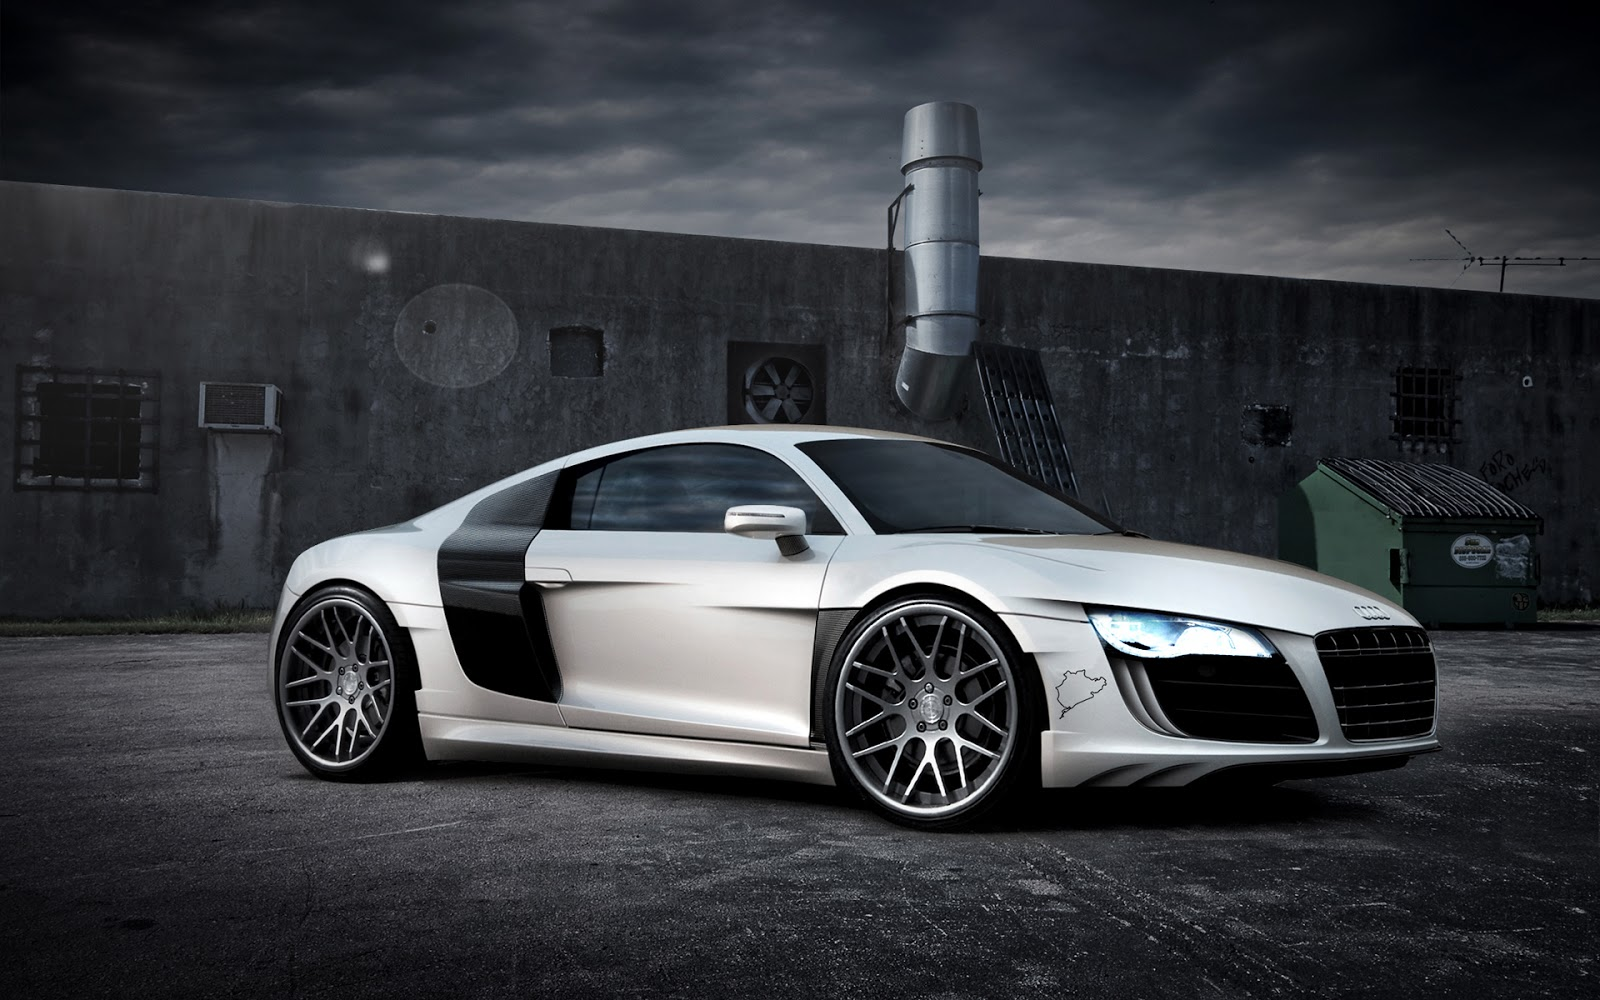 Cool Cars HD Wallpapers – wallpaper202